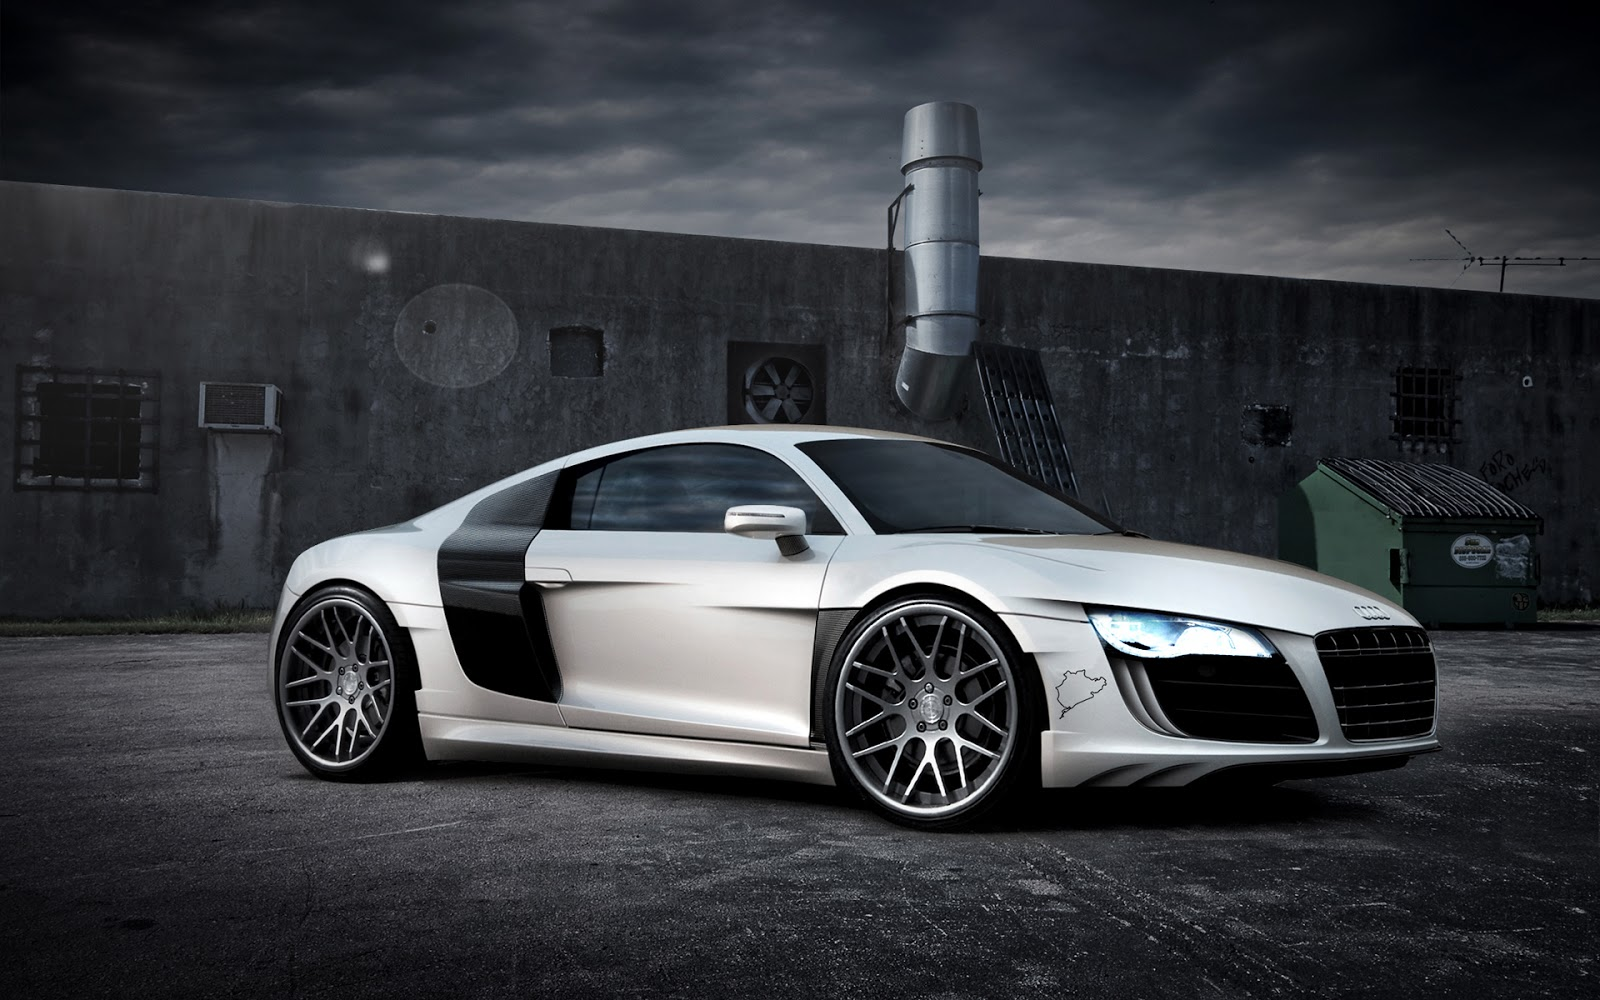 Cool Cars HD Wallpapers – wallpaper202